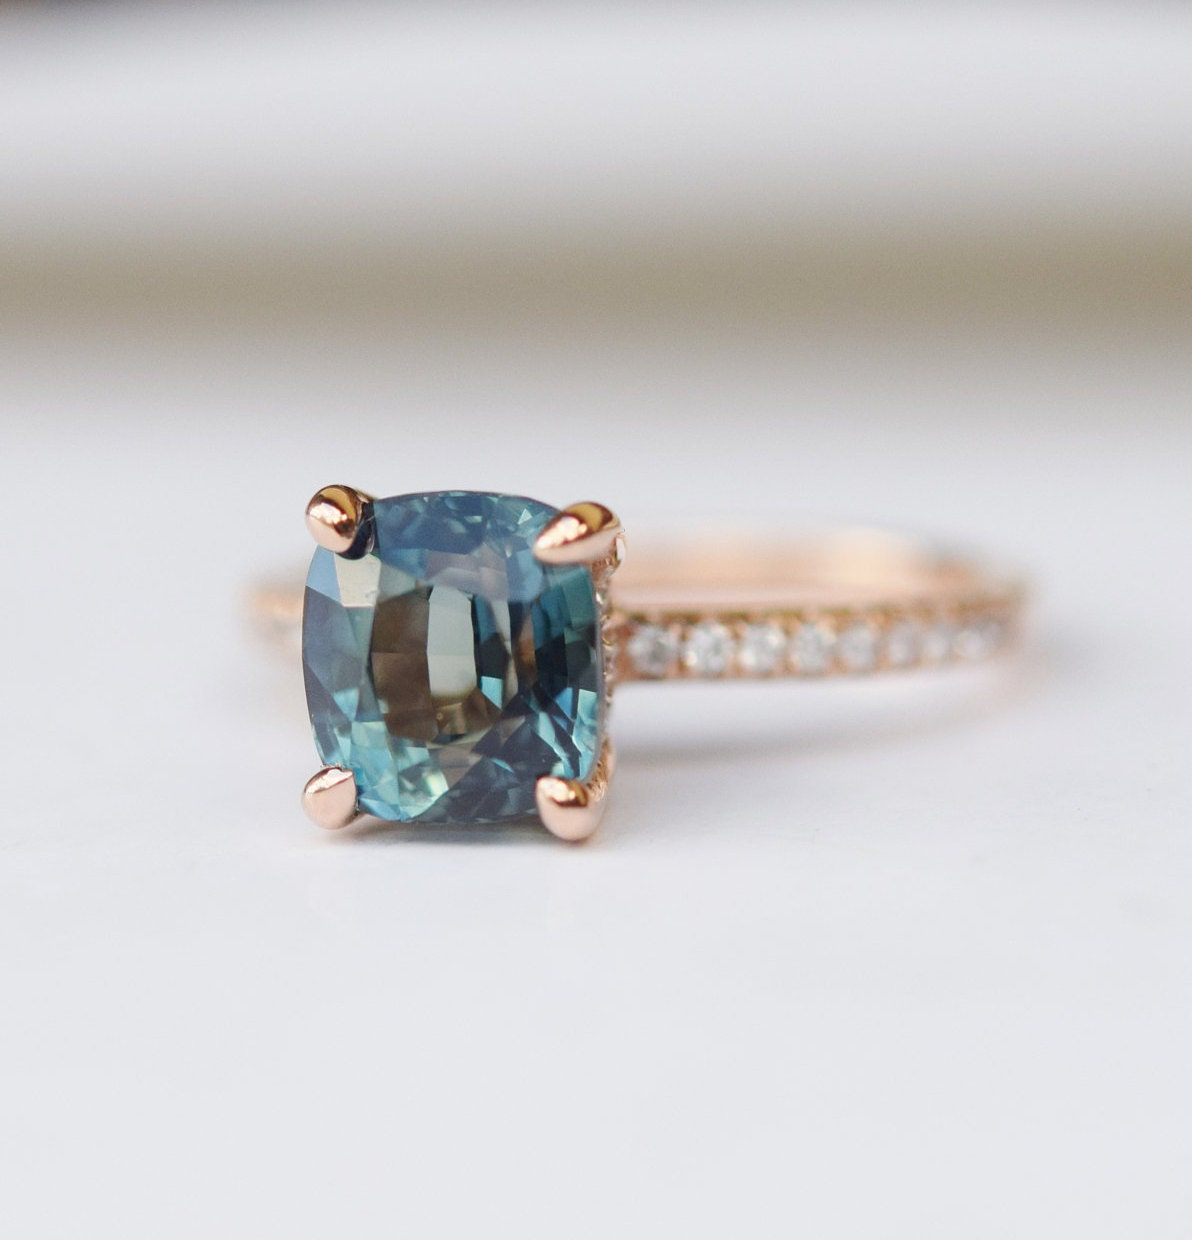 beautiful blue pinterest ring wedding awesome best sapphire green on engagement and images vintage rings of